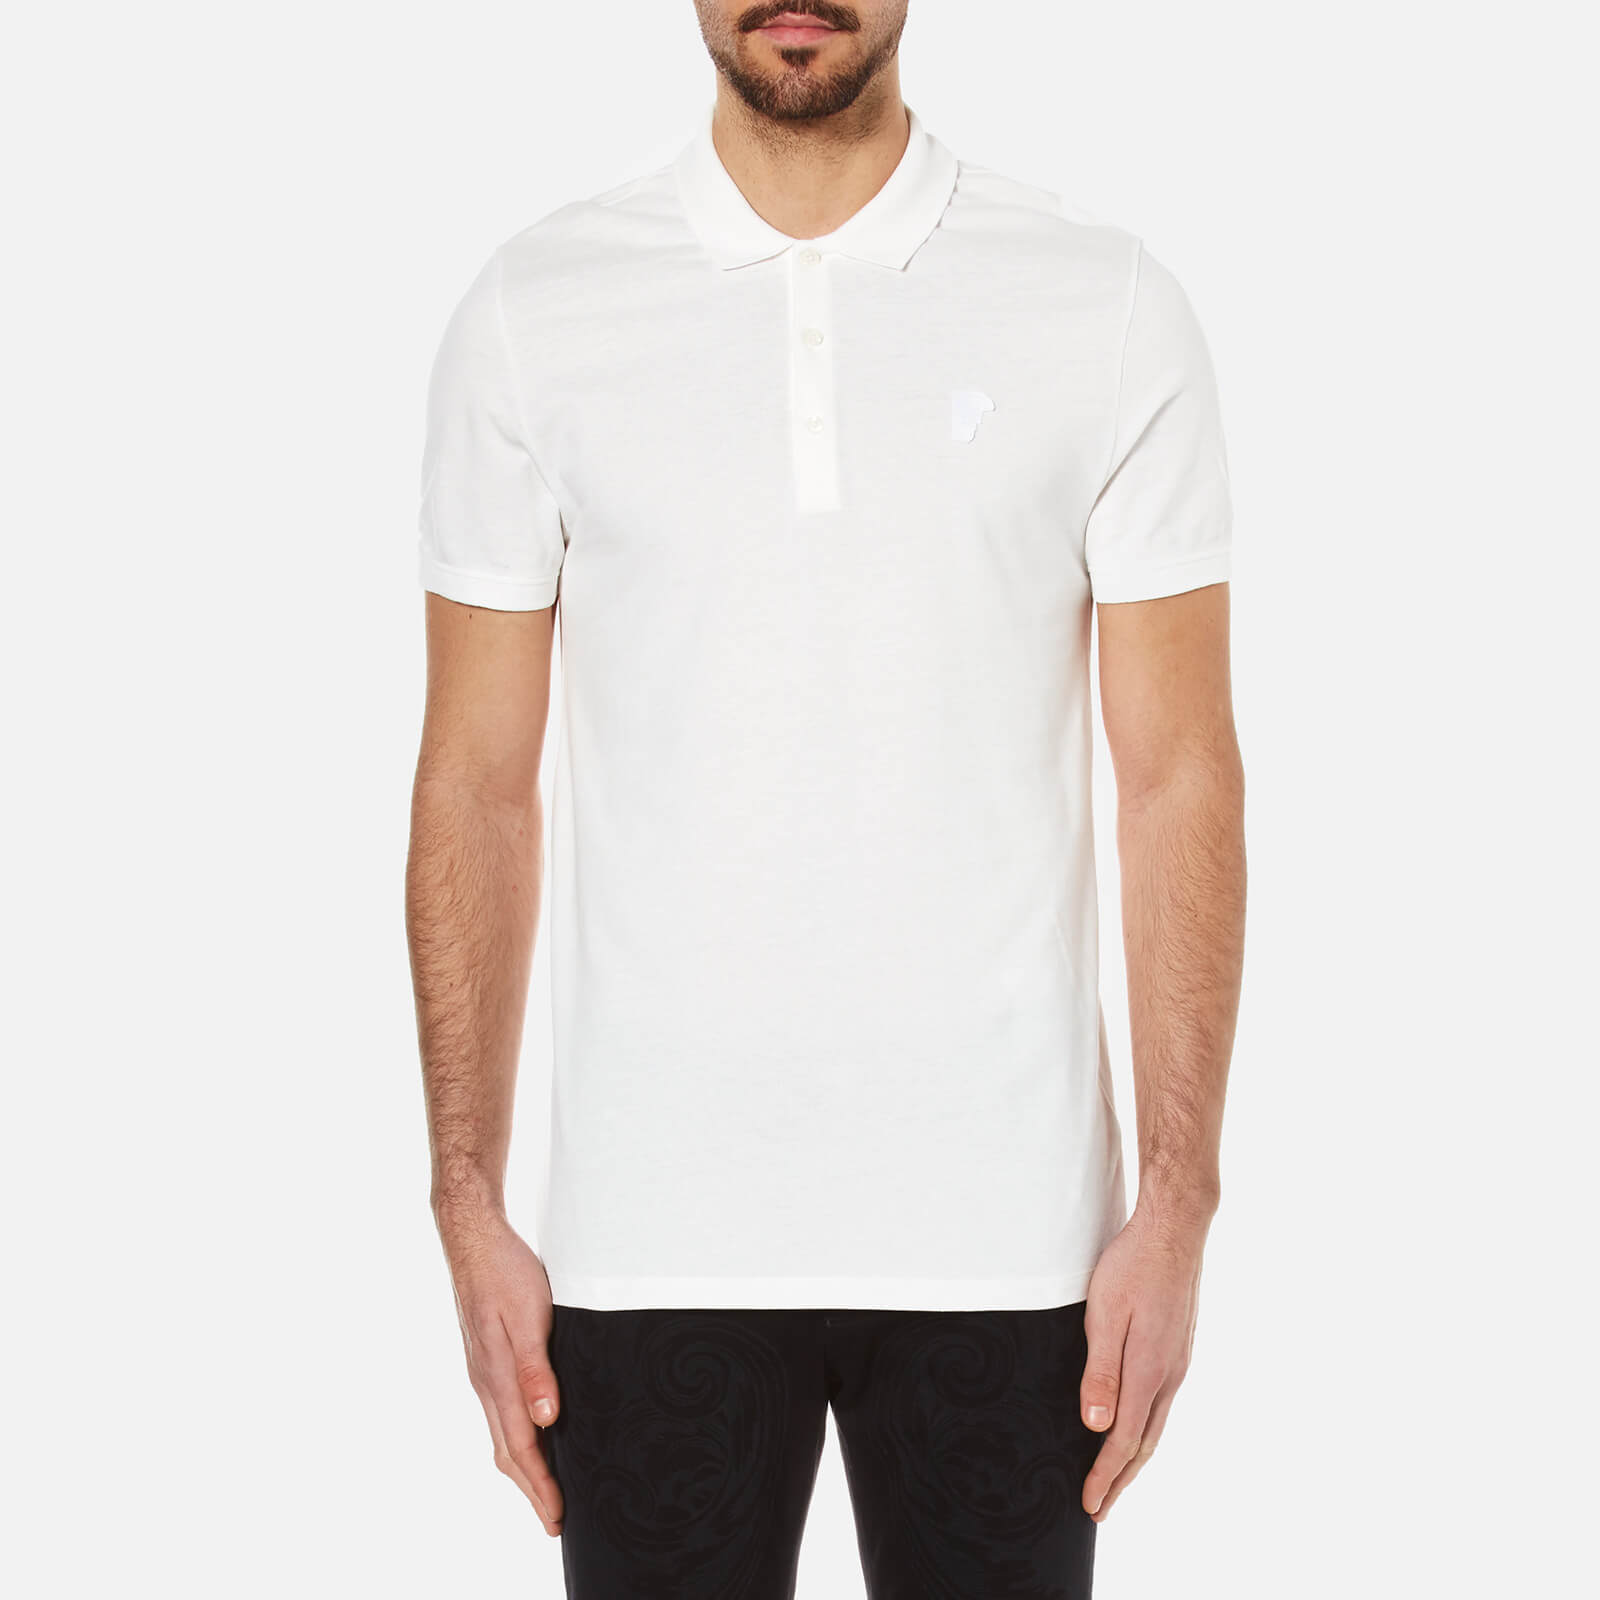 dbd324211a725 Versace Collection Men s Pique Polo Shirt - White - Free UK Delivery over £ 50